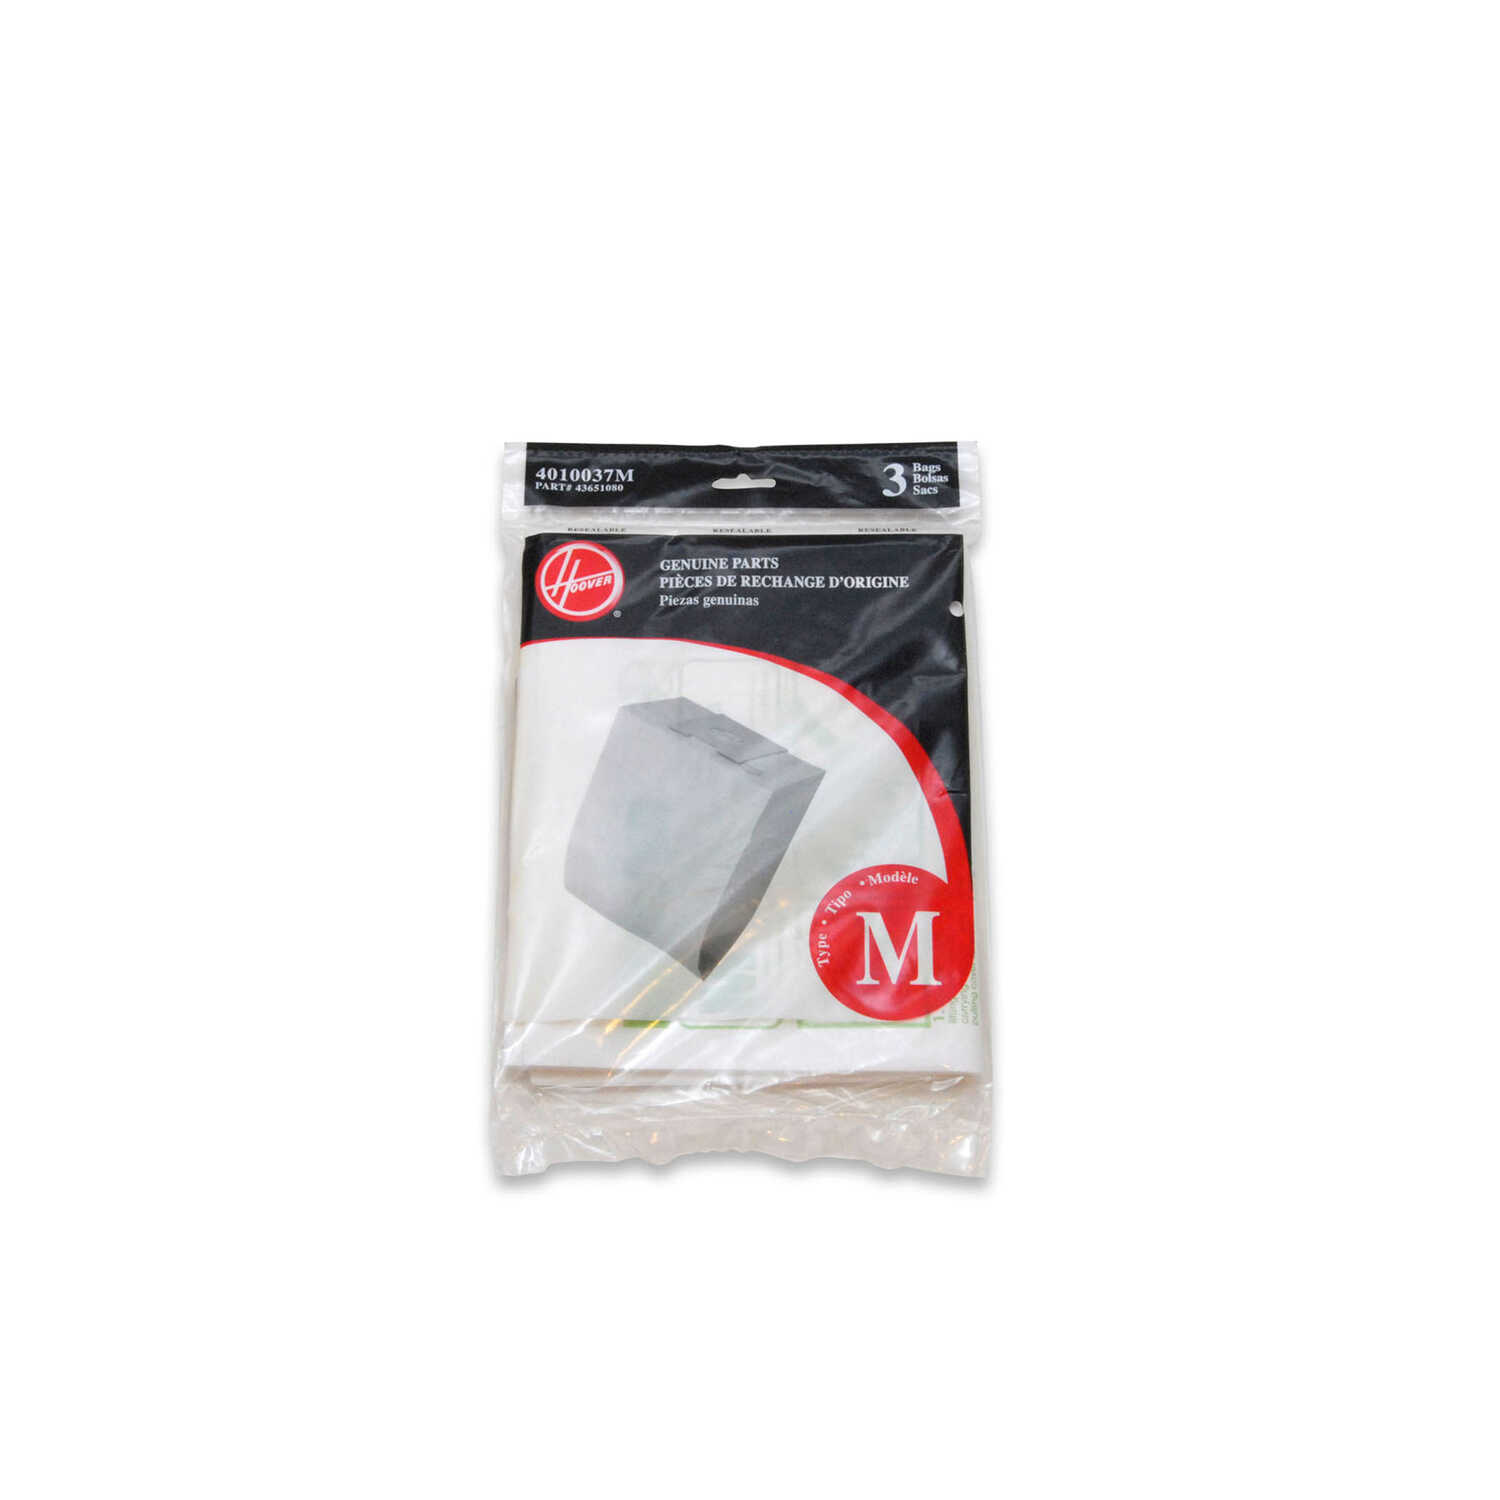 Hoover  Vacuum Bag  For Fits Hoover Dimension Canister Cleaners. 3 pk